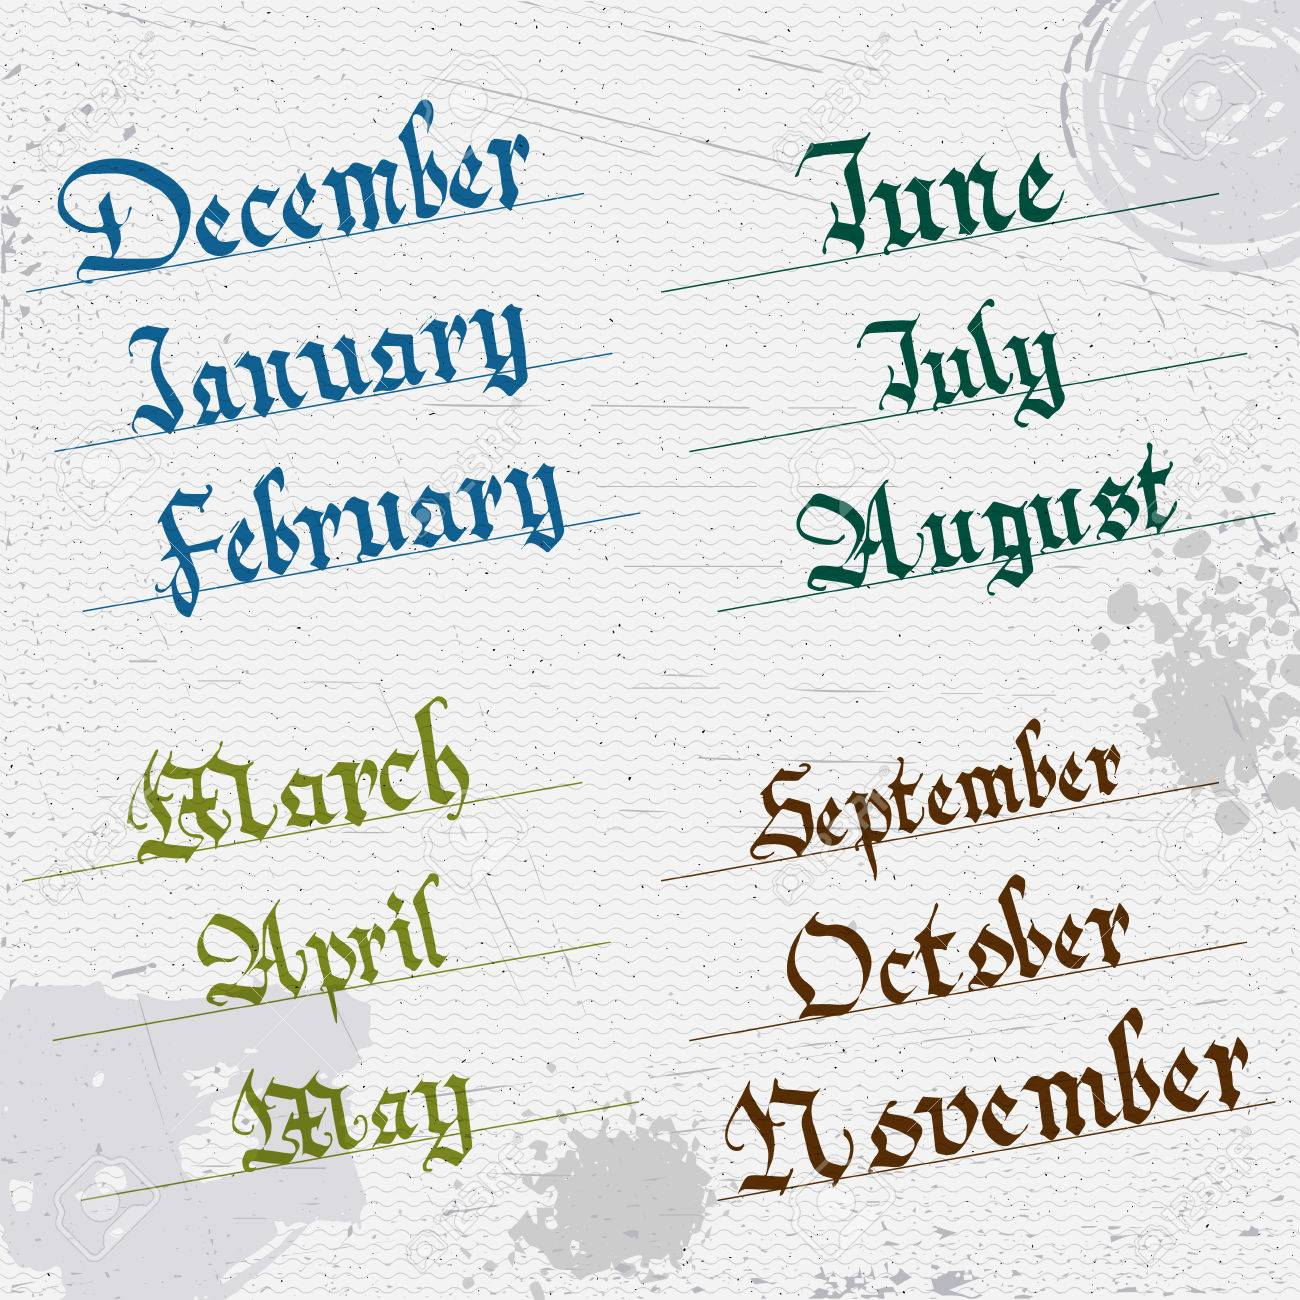 Months Of The Year Hand Writing Gothic January February March April May June July